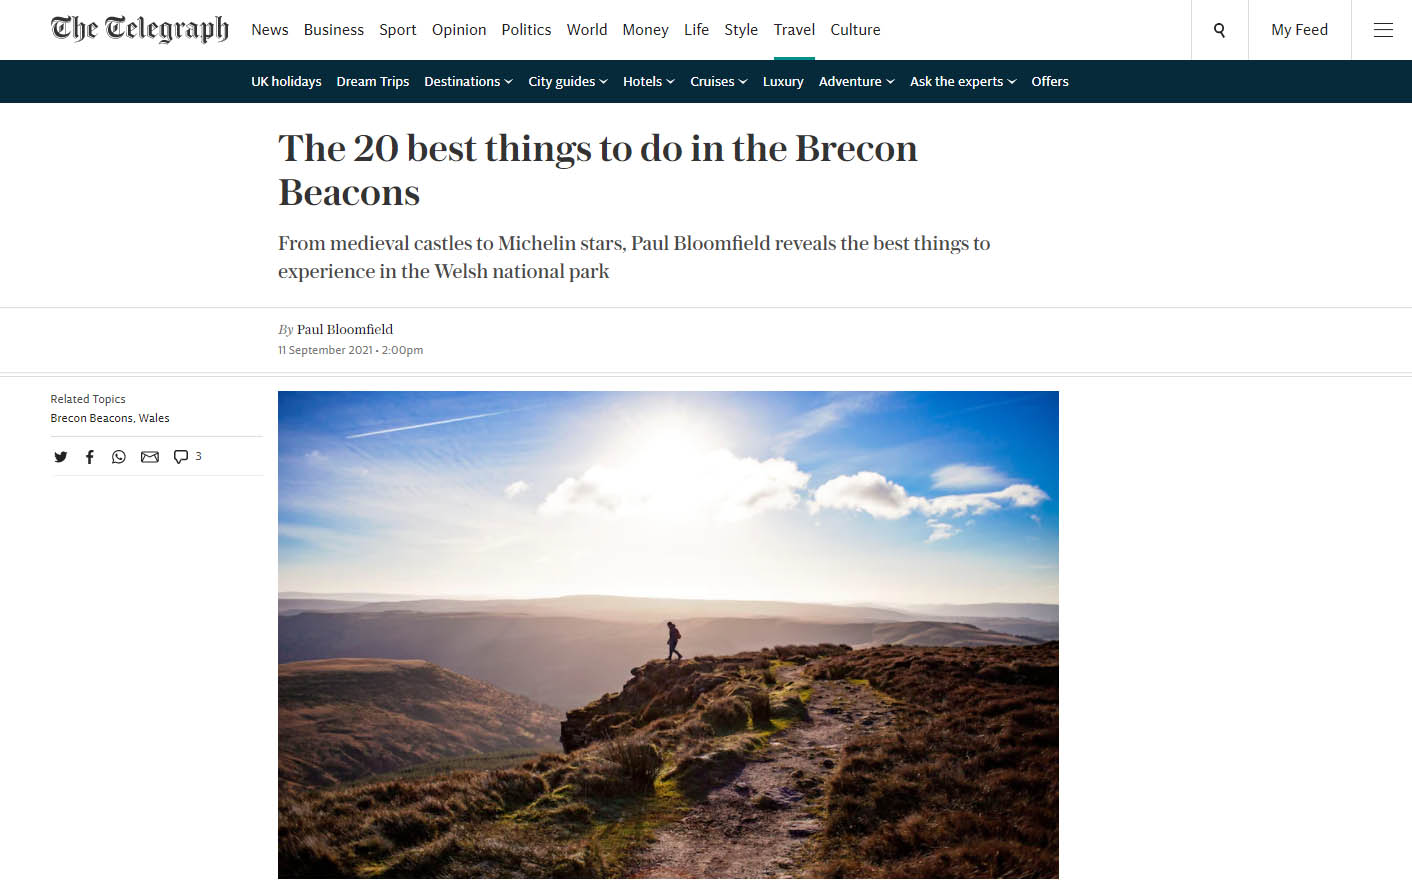 the top 20 things to do in the Brecon Beacons - The Telegraph